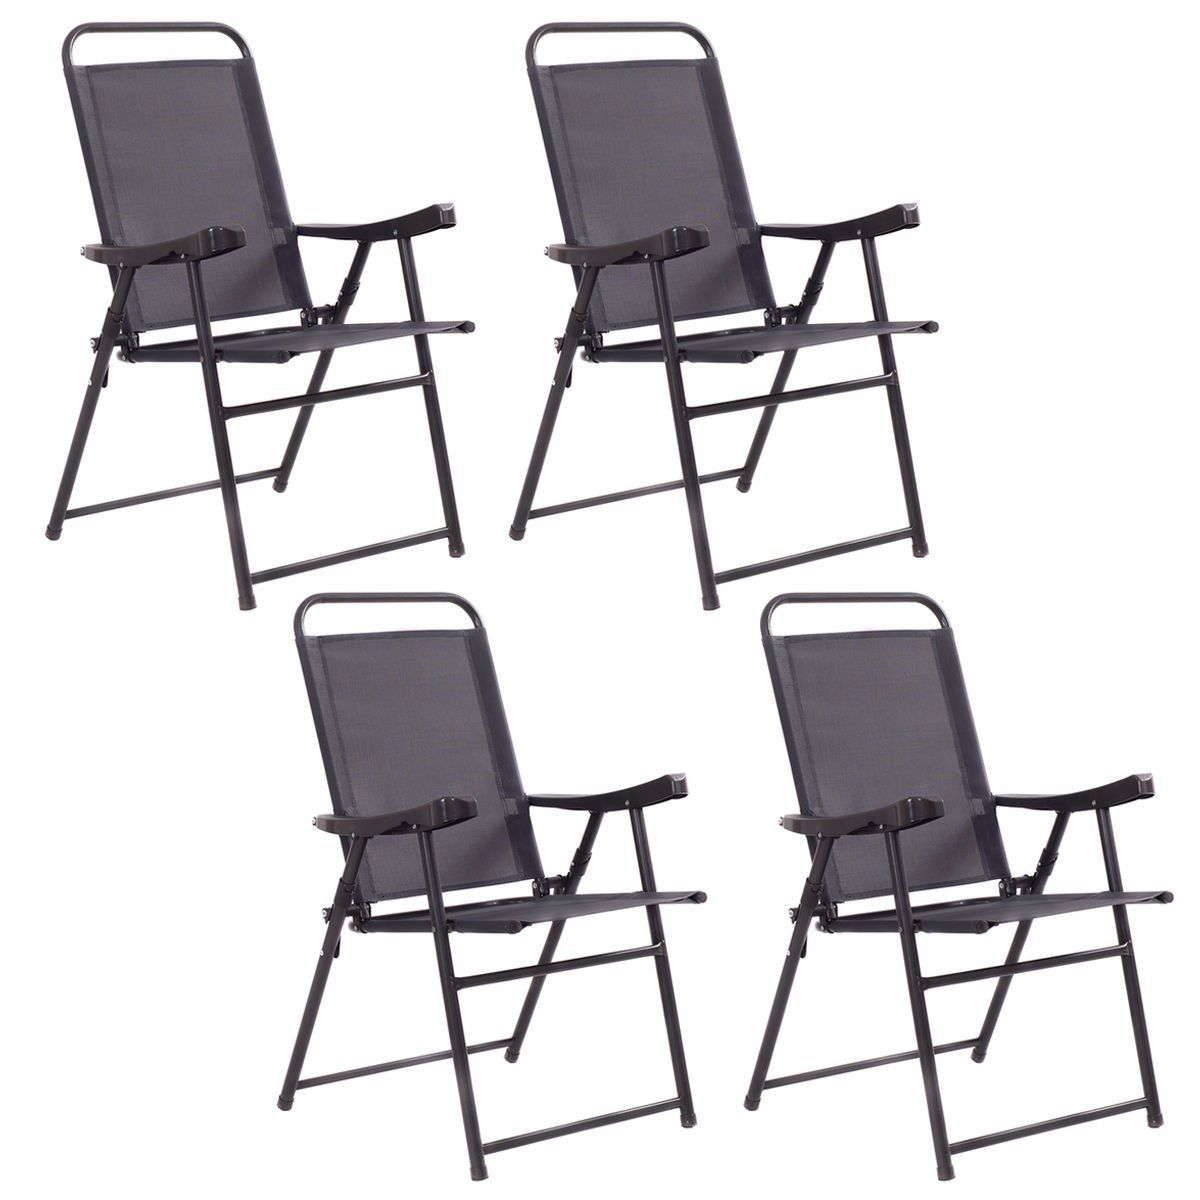 Set of black outdoor folding patio chairs steel frame sling fabric